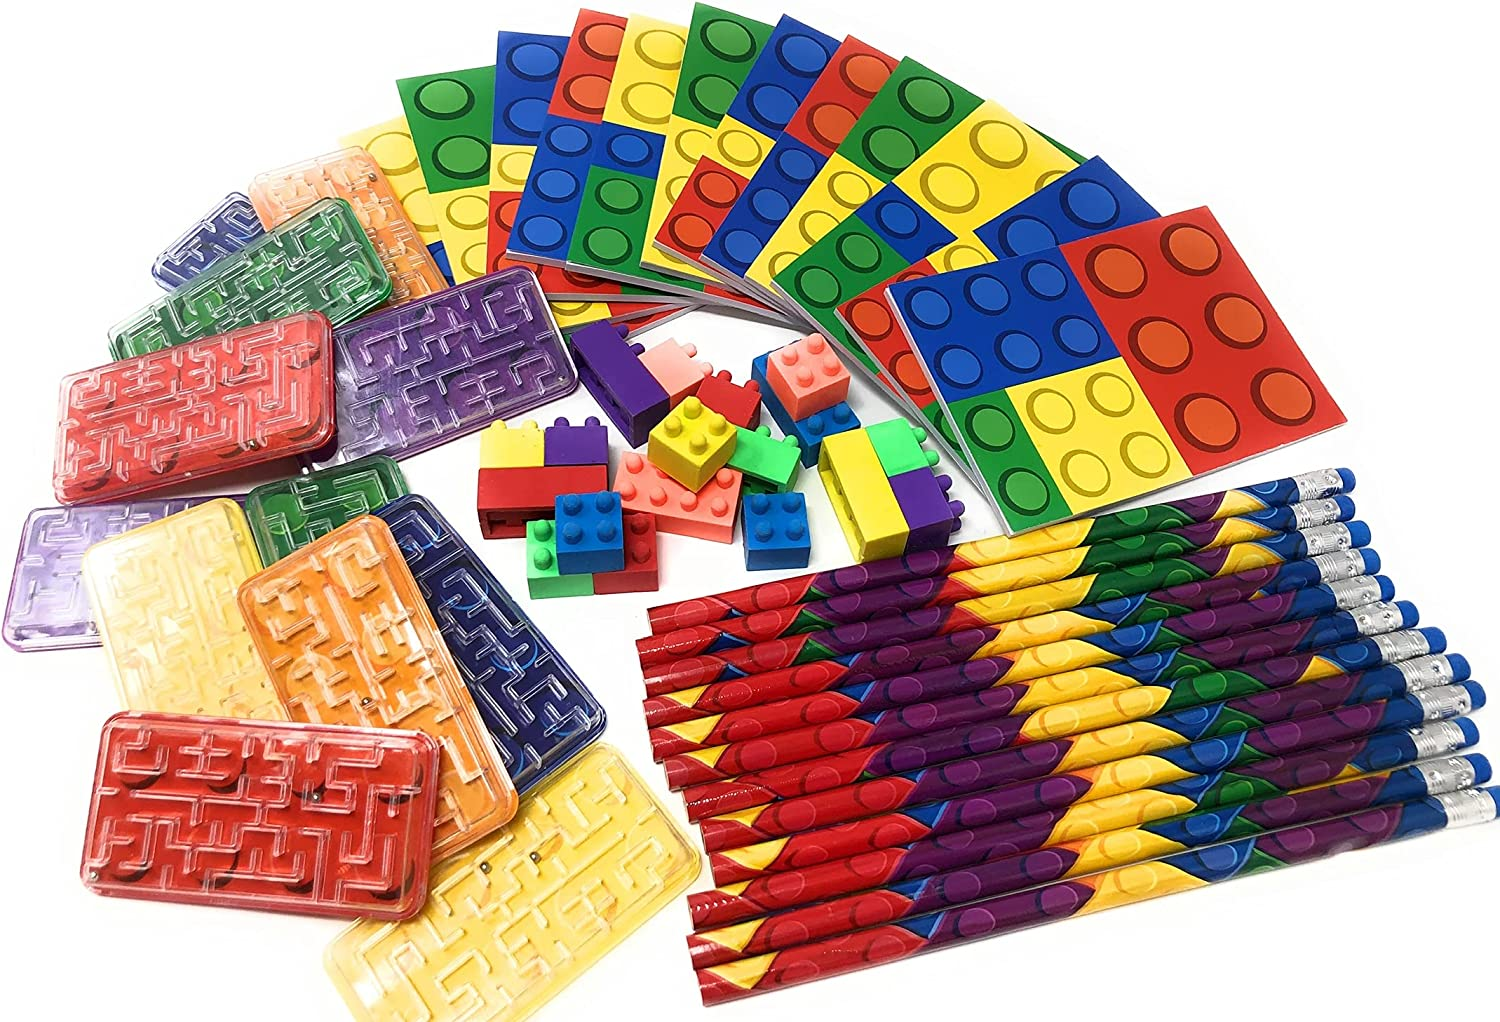 Brick Building Blocks Party Favor Novelty Block Max A surprise price is realized 68% OFF Penci Toys - Set